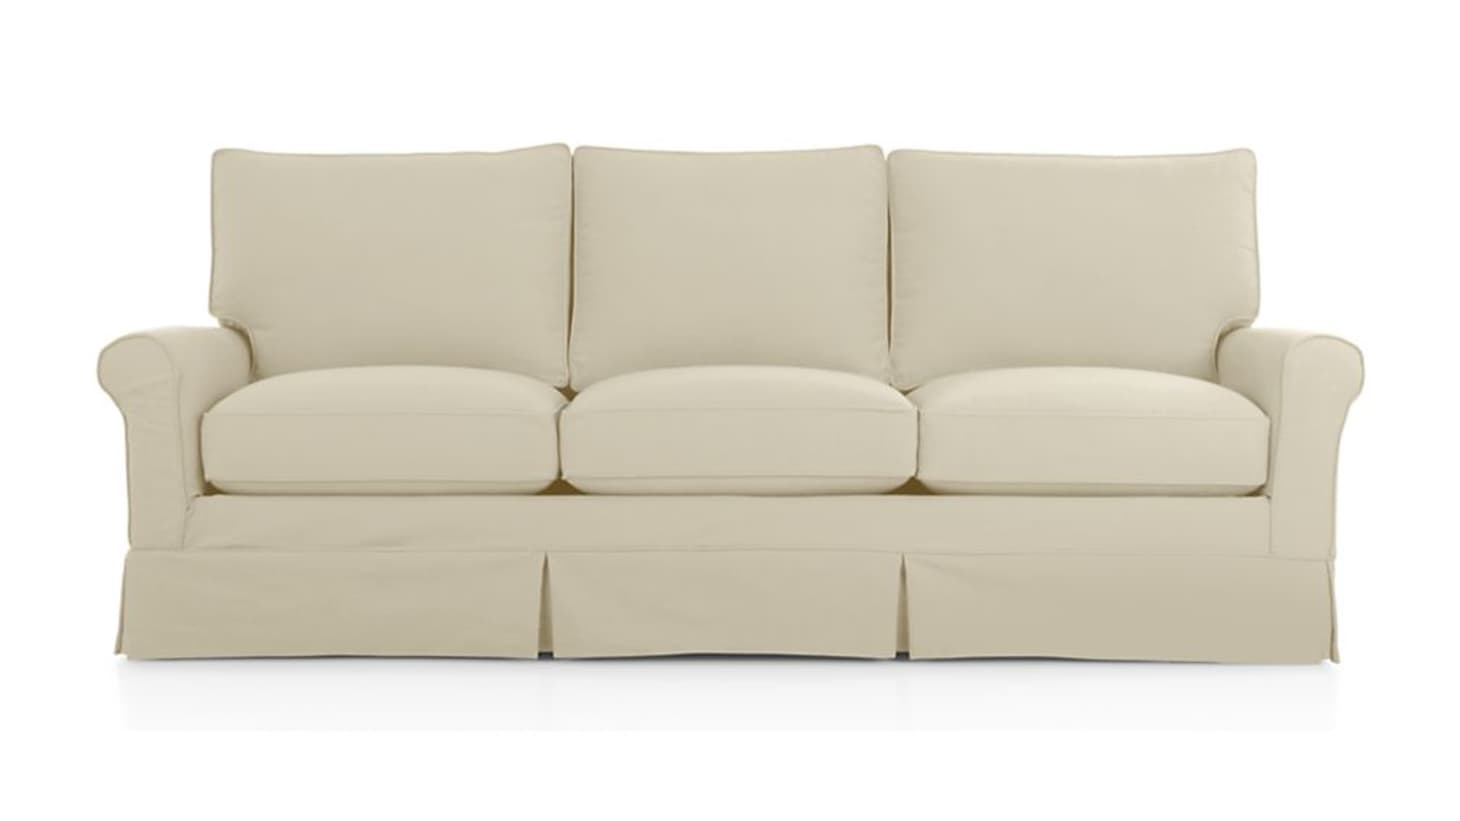 Enjoyable Reviewed The Most Comfortable Sofas At Crate Barrel Ibusinesslaw Wood Chair Design Ideas Ibusinesslaworg